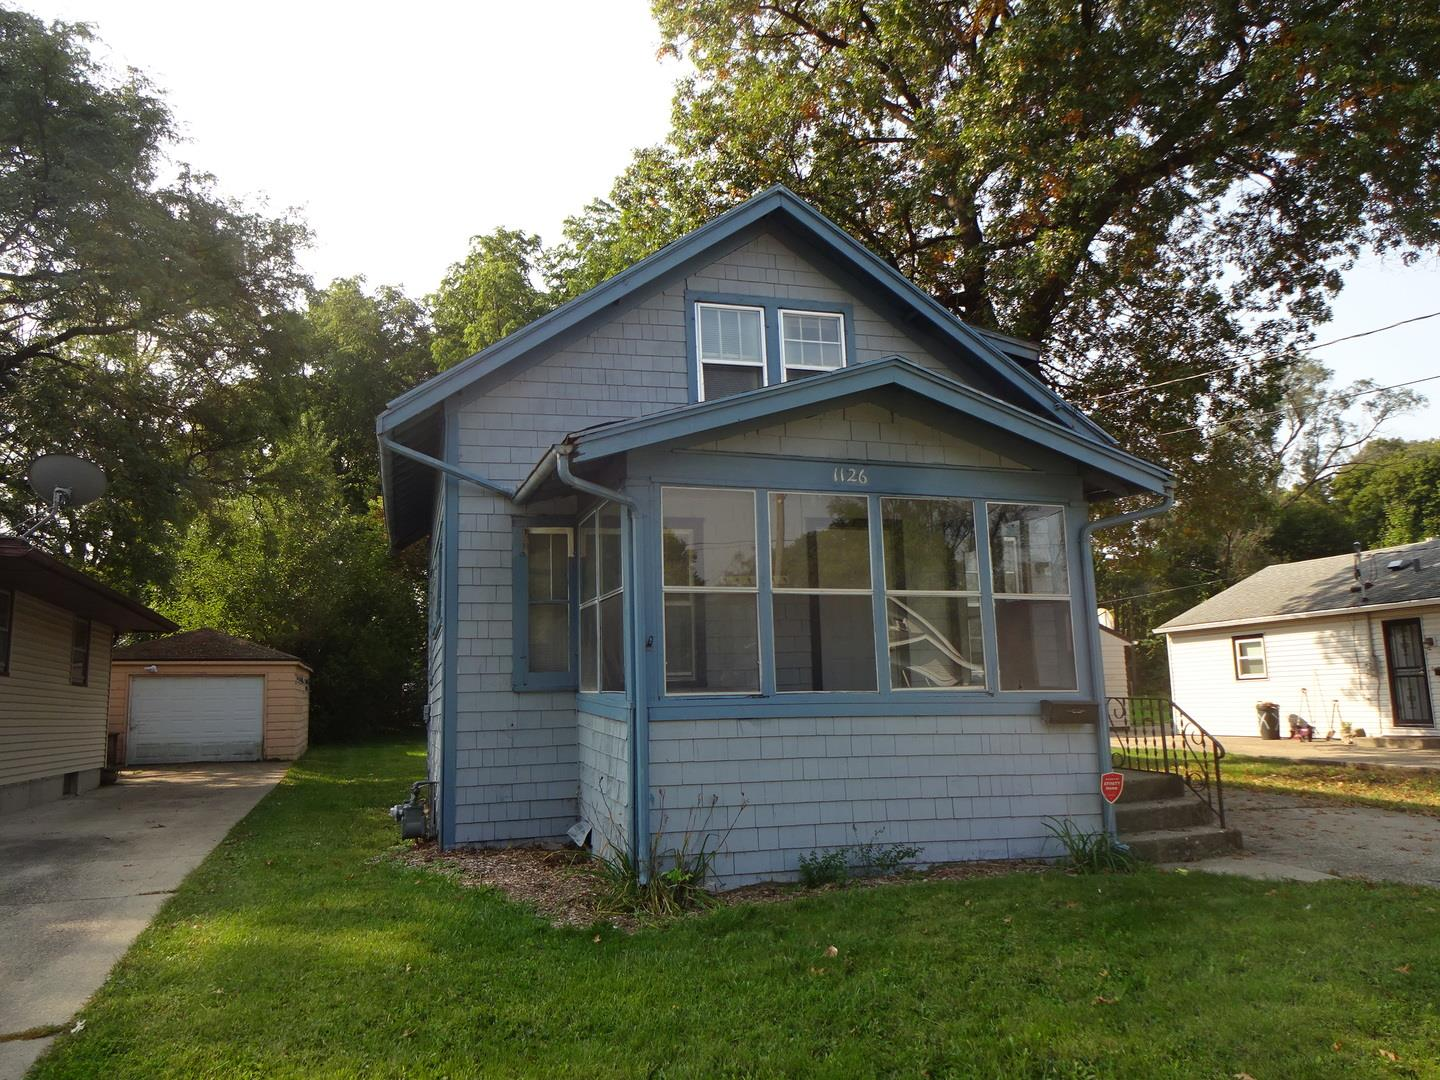 1126 Ashland Avenue, Rockford, IL 61101 - #: 10879632